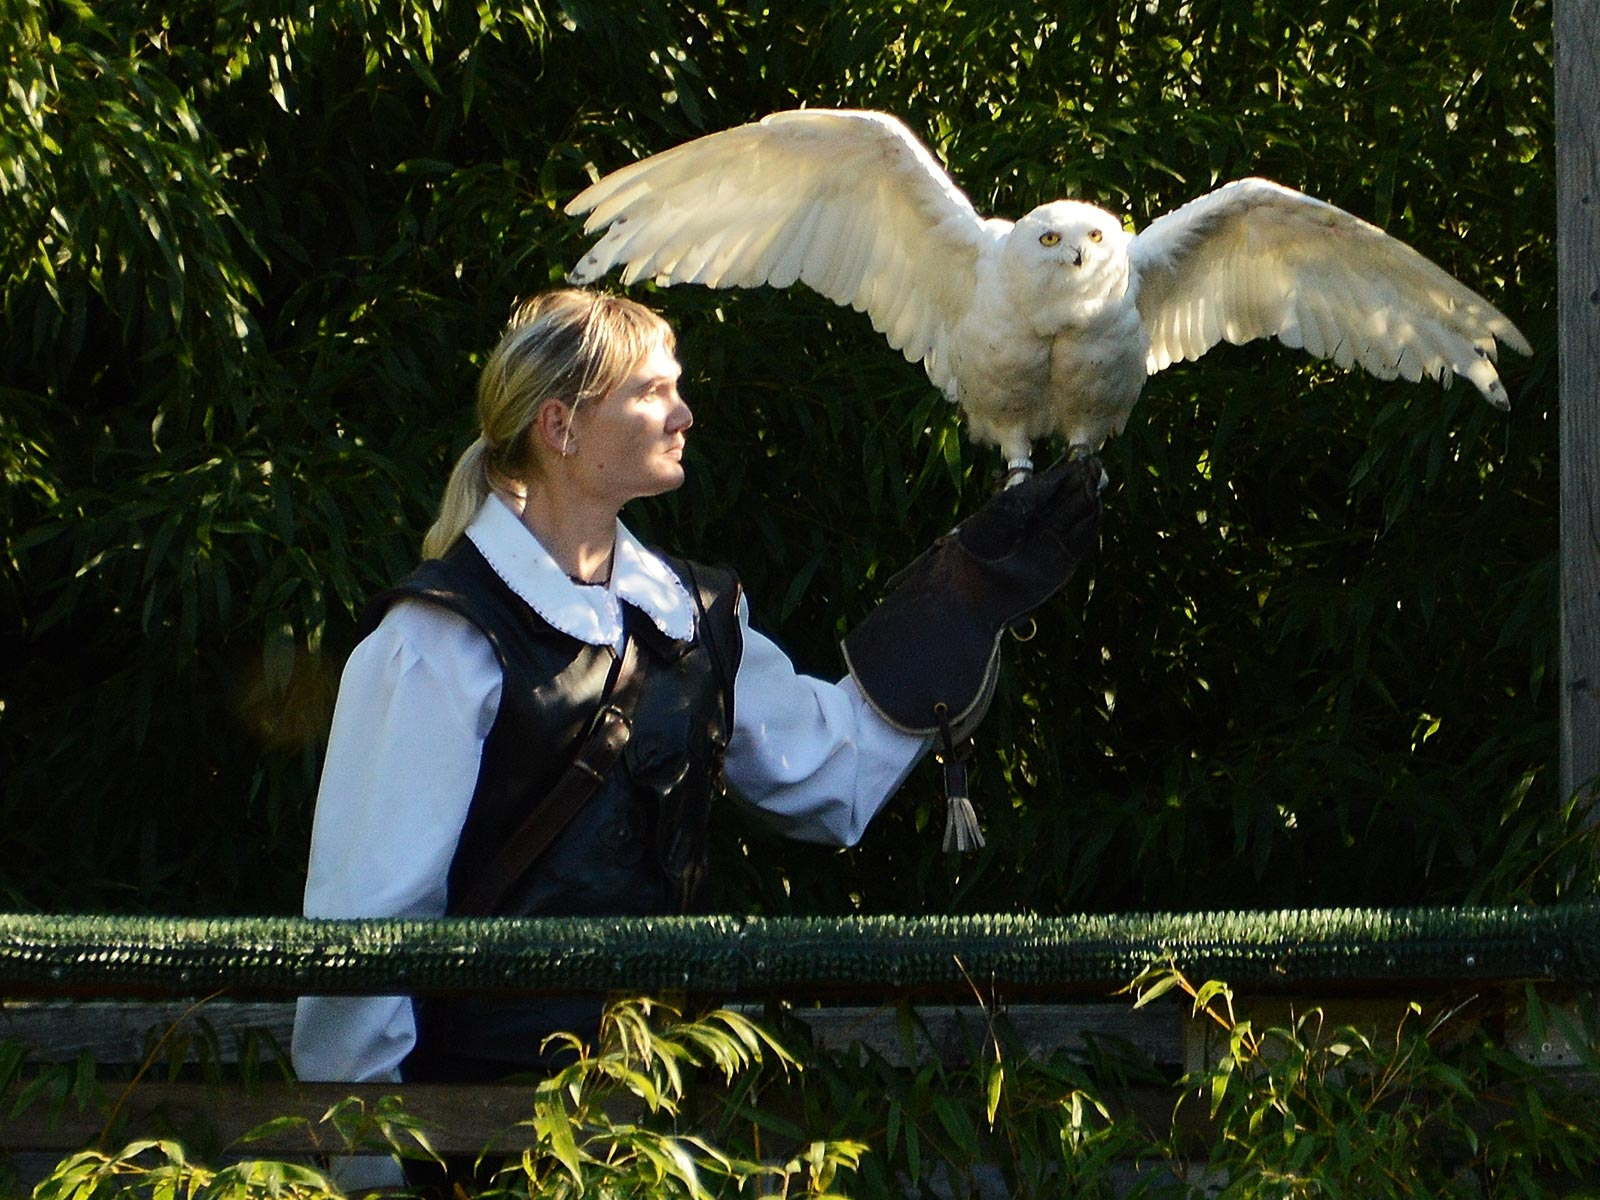 Park-Hotel-Brenscino-Brissago-hotel-Activity-Falconeria.jpg